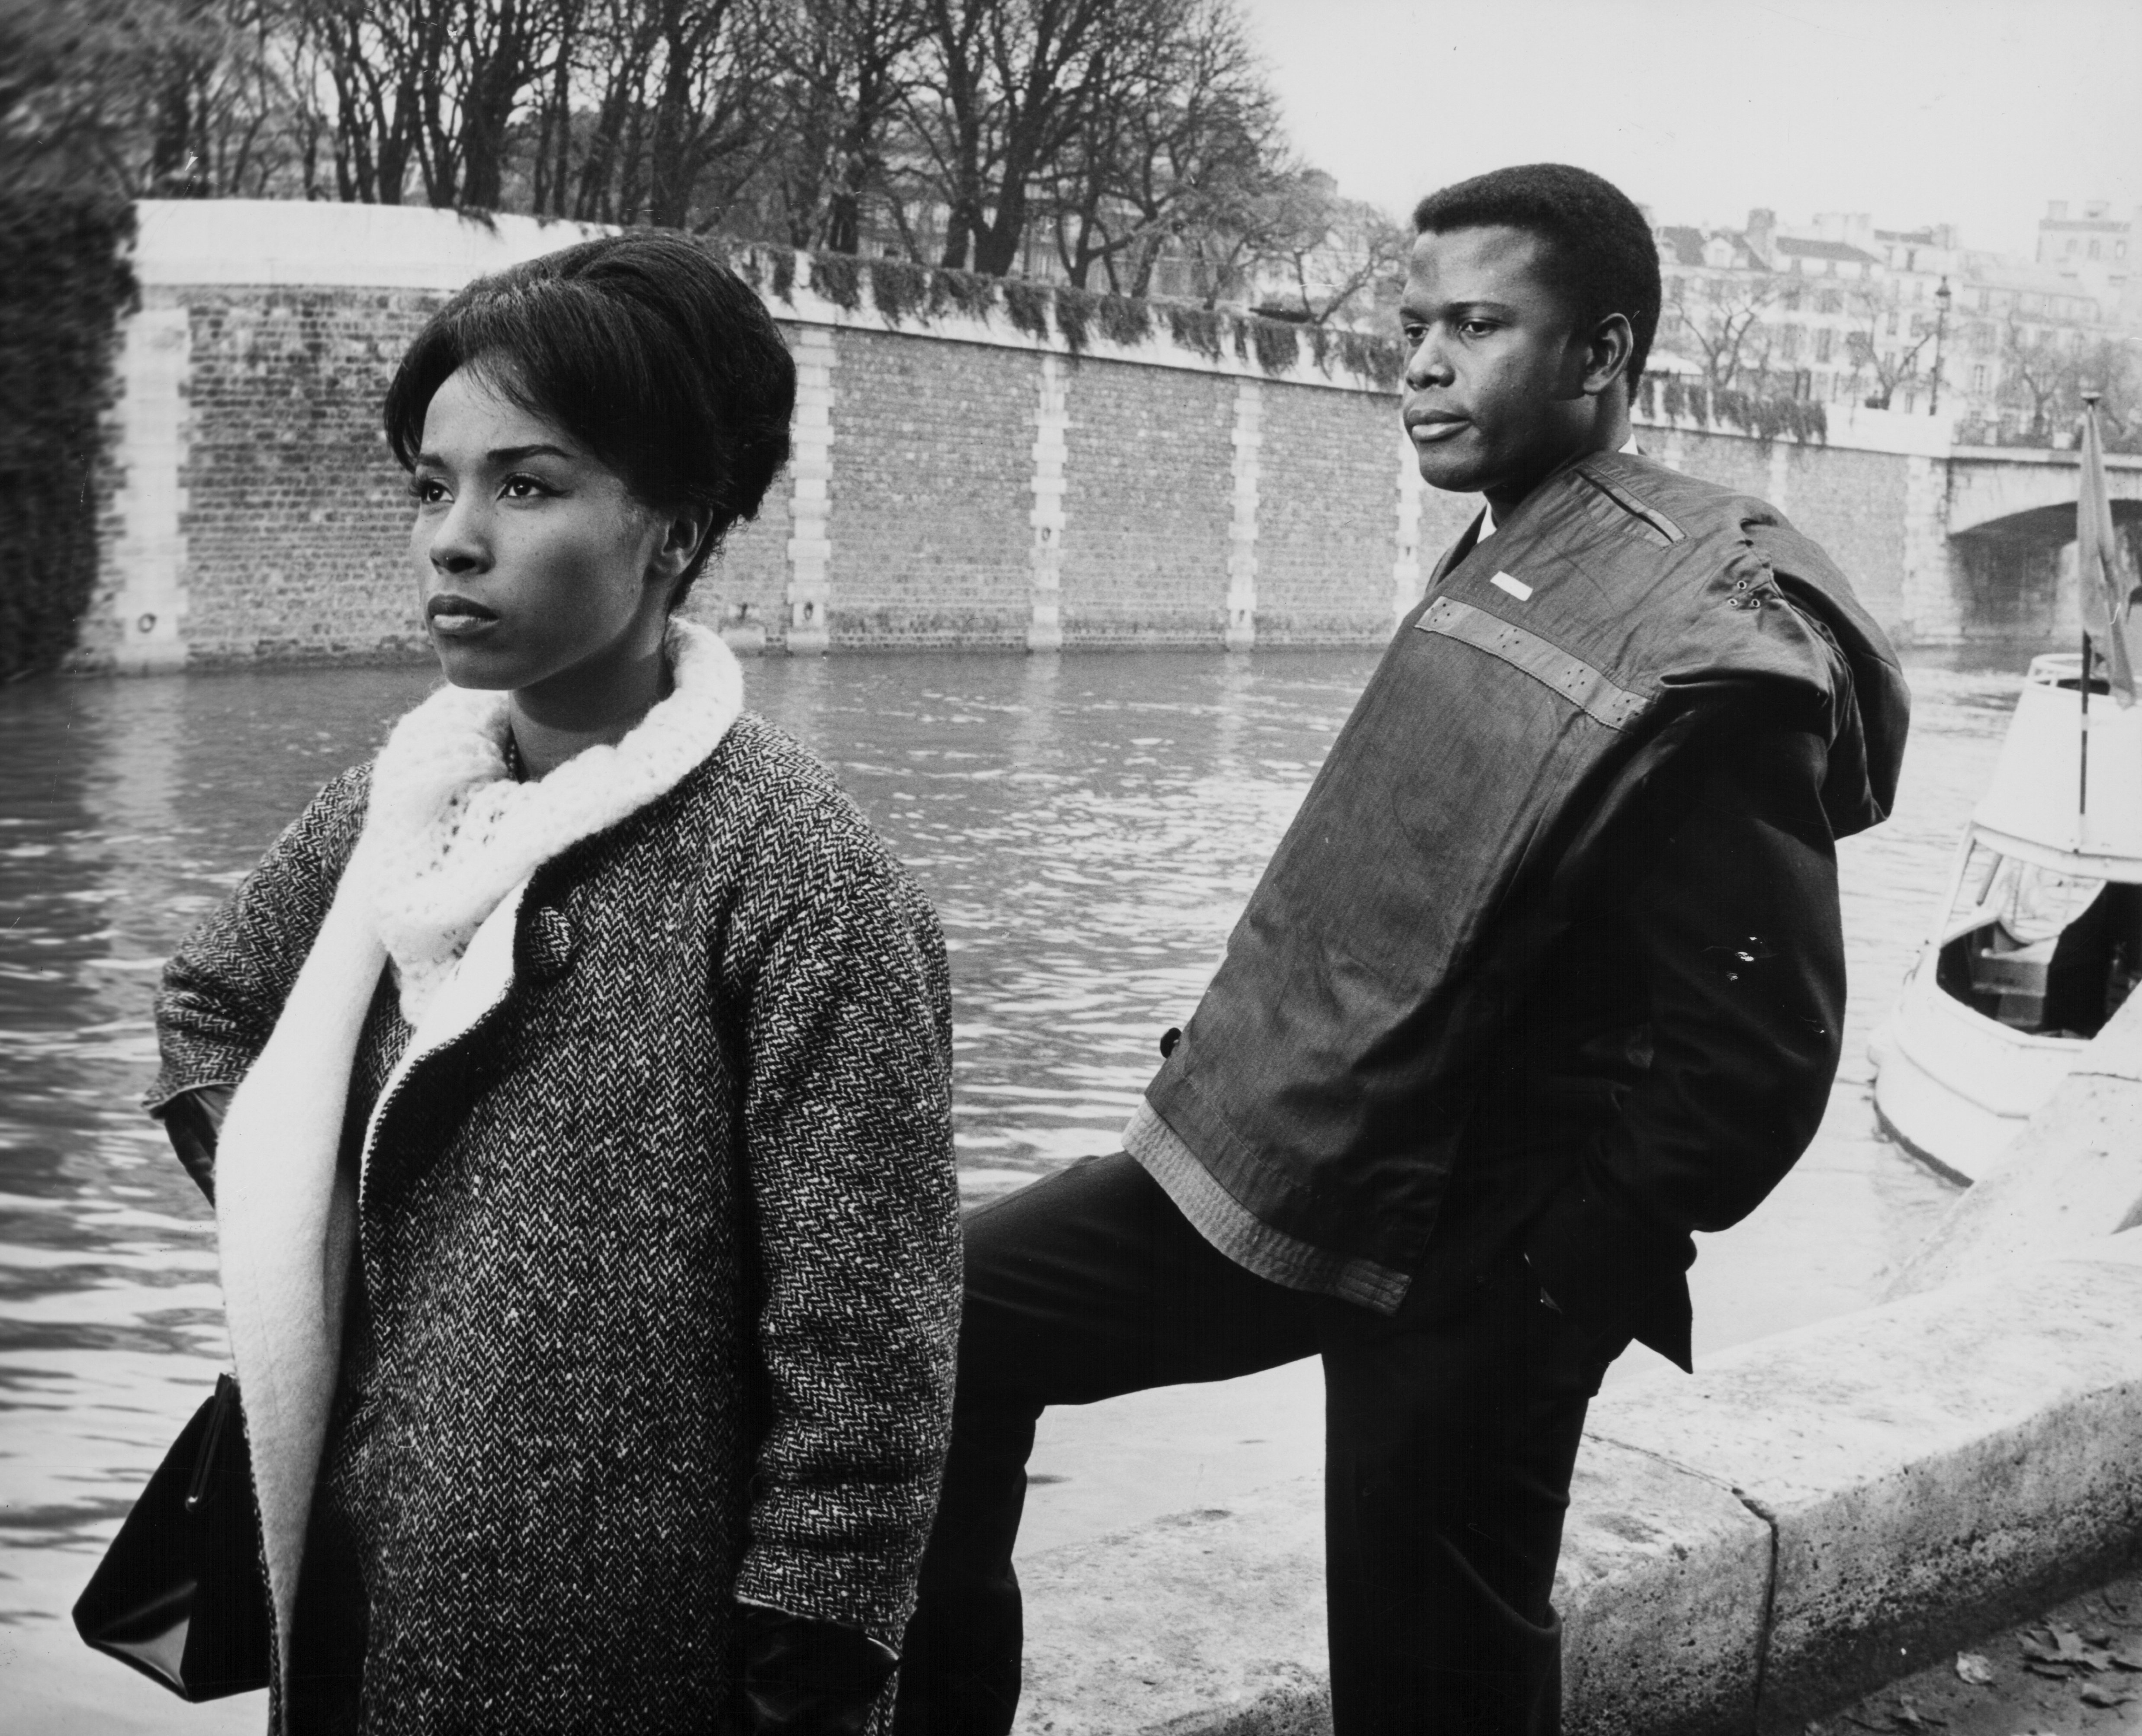 """Diahann Carroll and Sidney Poitier during a scene from the movie """"Paris Blues,"""" in 1961 